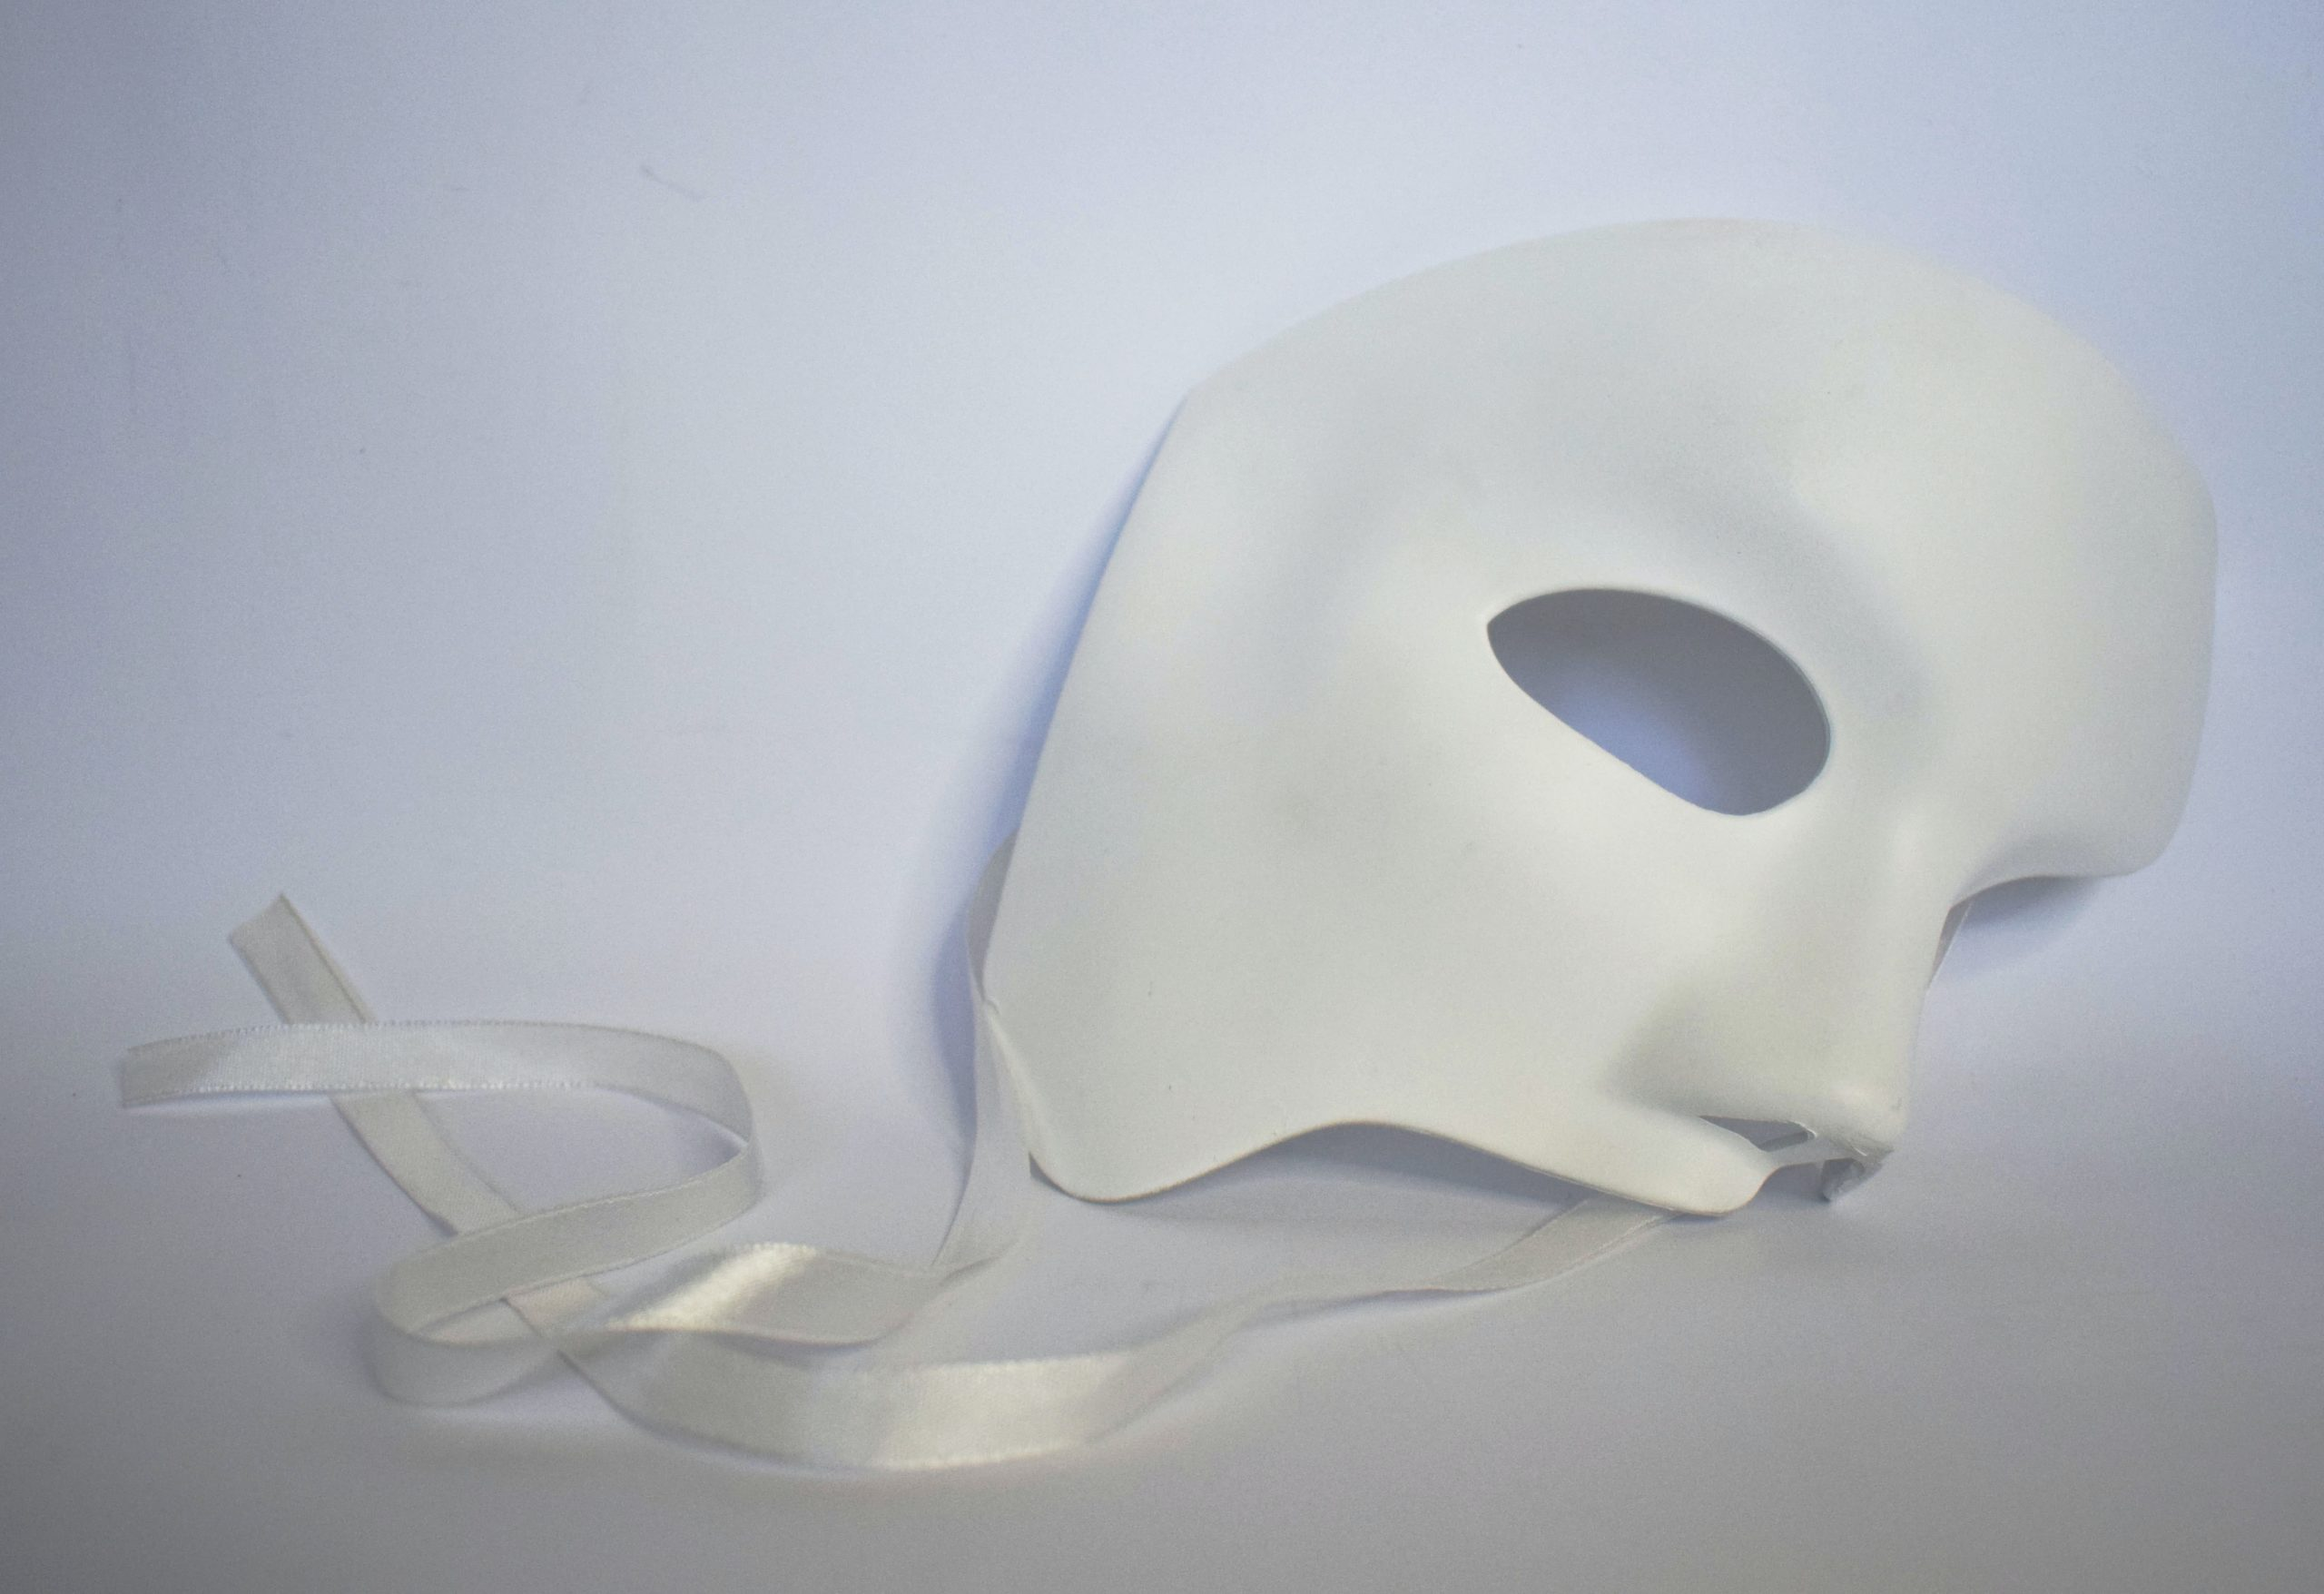 A white theater mask that covers only right upper half of the face, with white silk ribbons, sits upright against a white background.